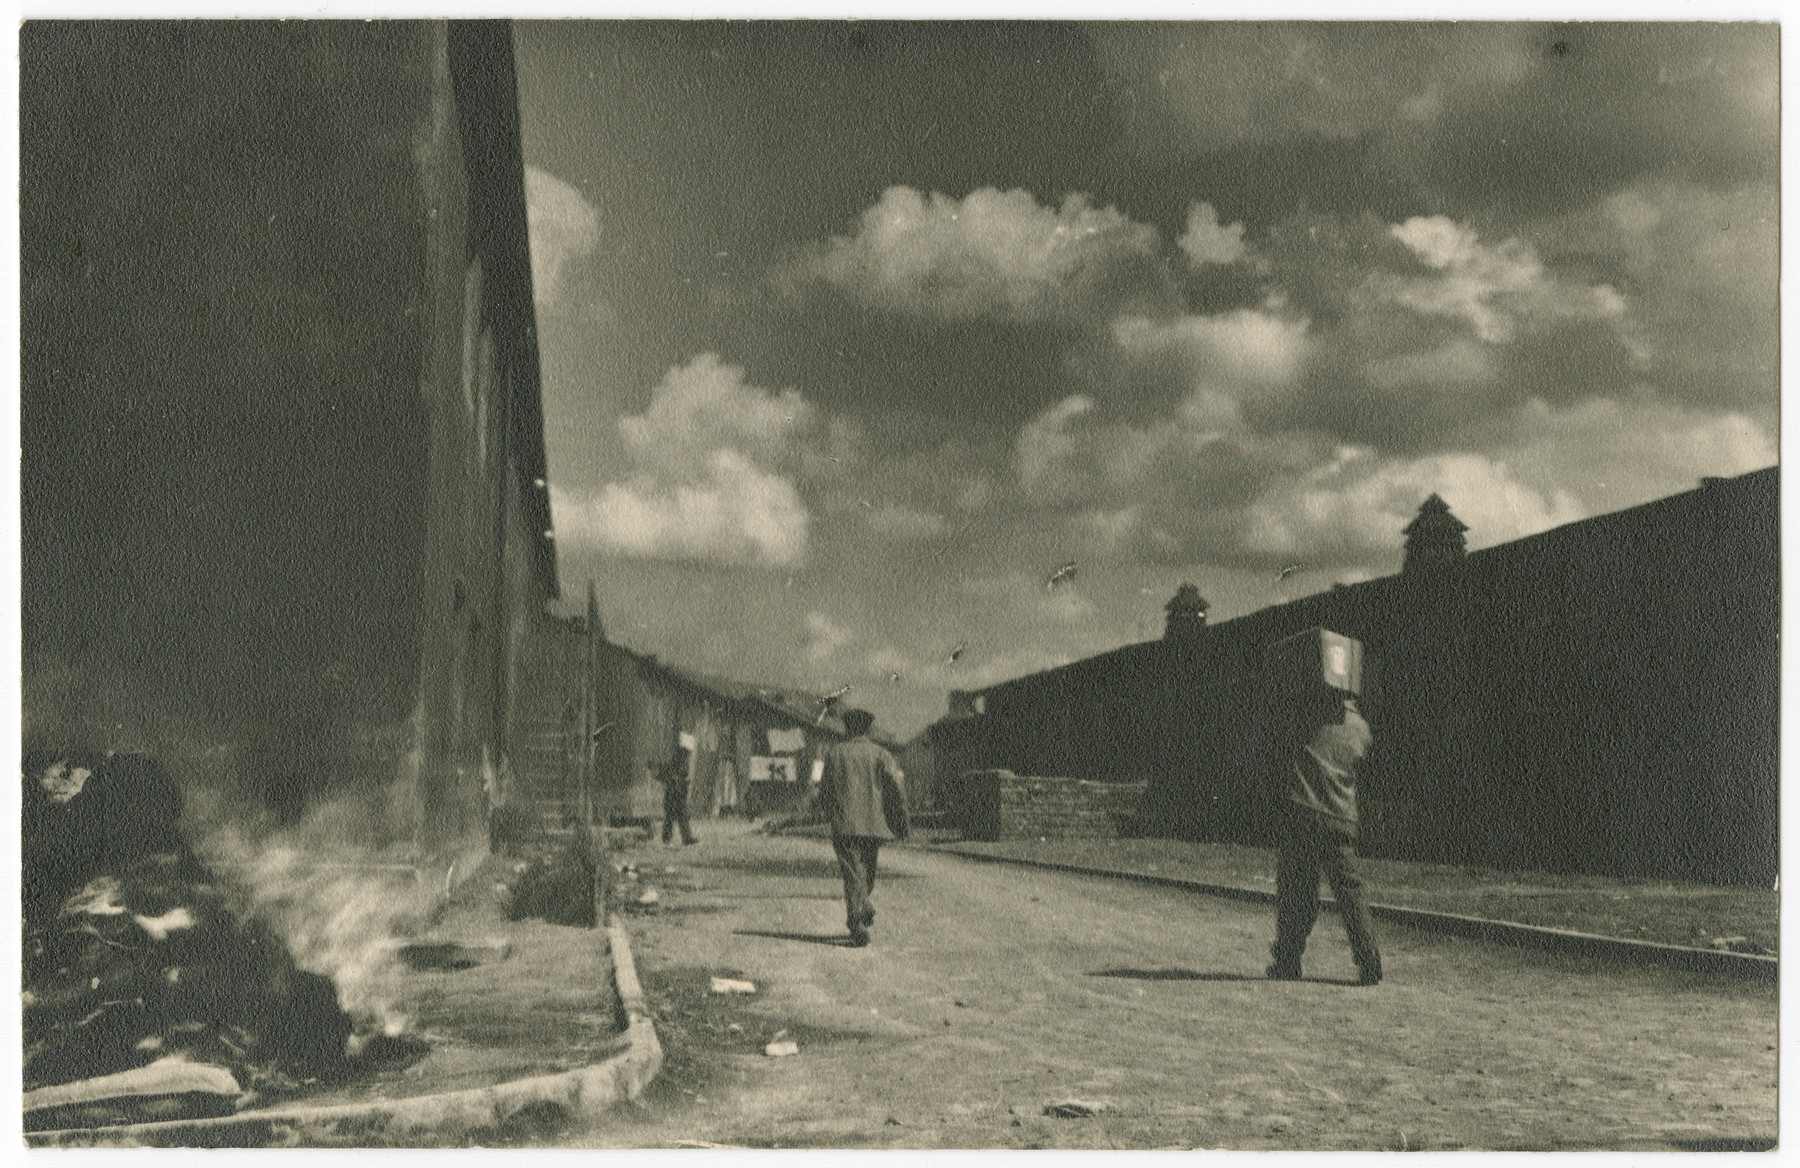 Survivors walk past the barracks of the Buchenwald concentration camp while a small fire burns on the side.